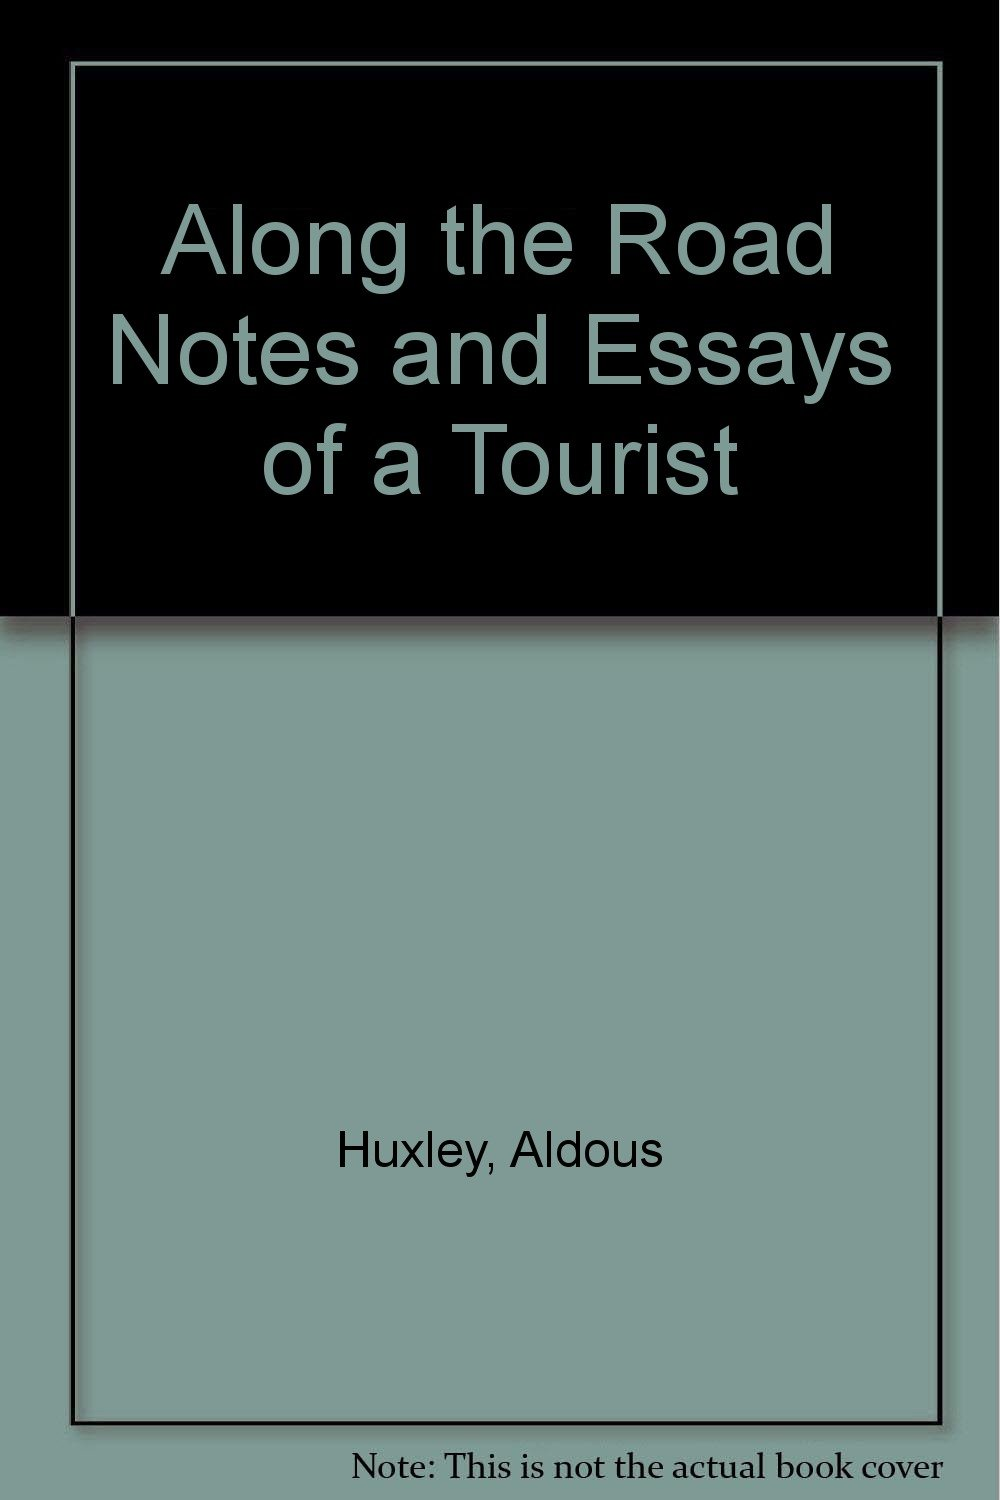 aldous huxley essay english snobbery Selected snobberies is an essay written by the author aldoushuxley just like bird watchers make lists of the species they haveseen, in this essay huxley lists the different types of snobbypeople he has encountered in his life.